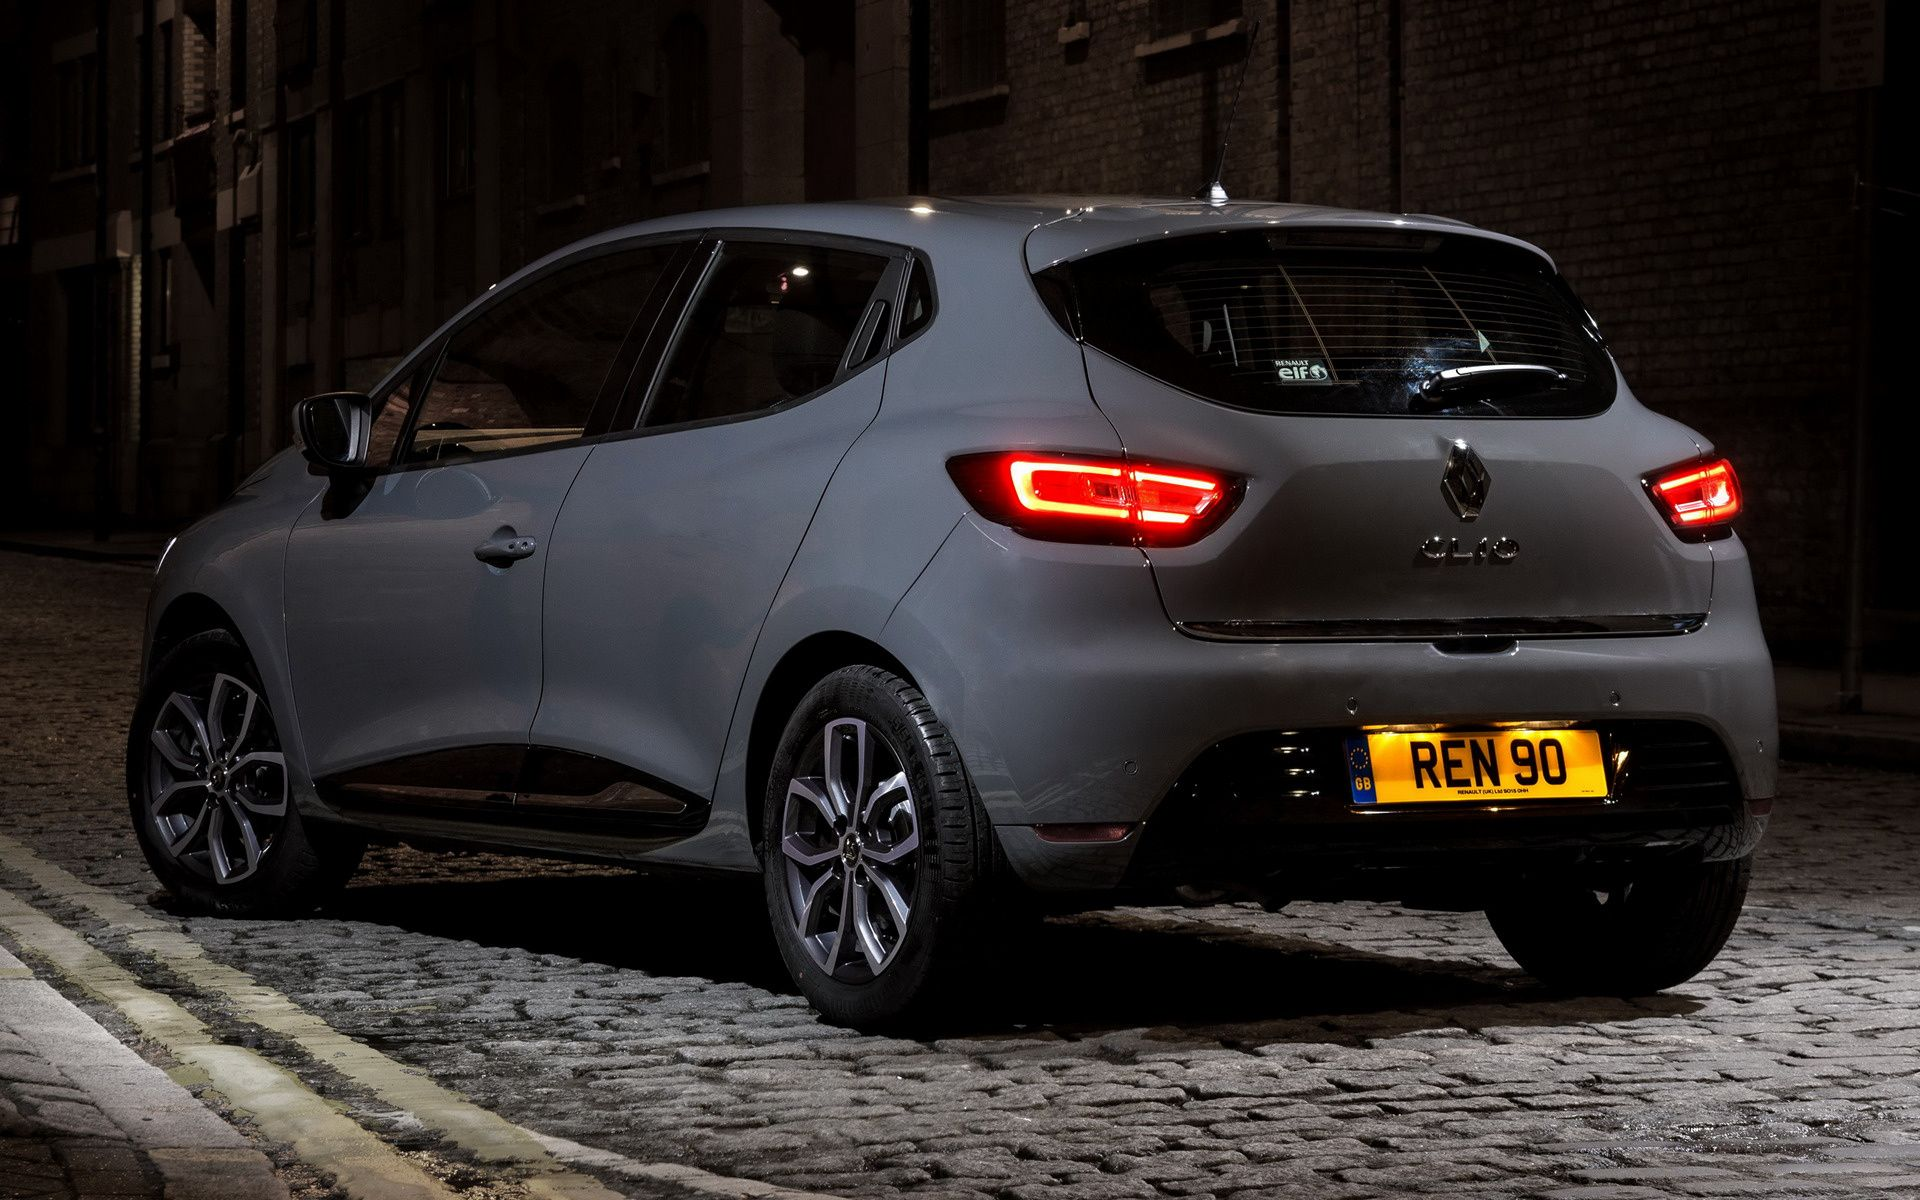 Renault Clio Wallpapers Top Free Renault Clio Backgrounds Wallpaperaccess